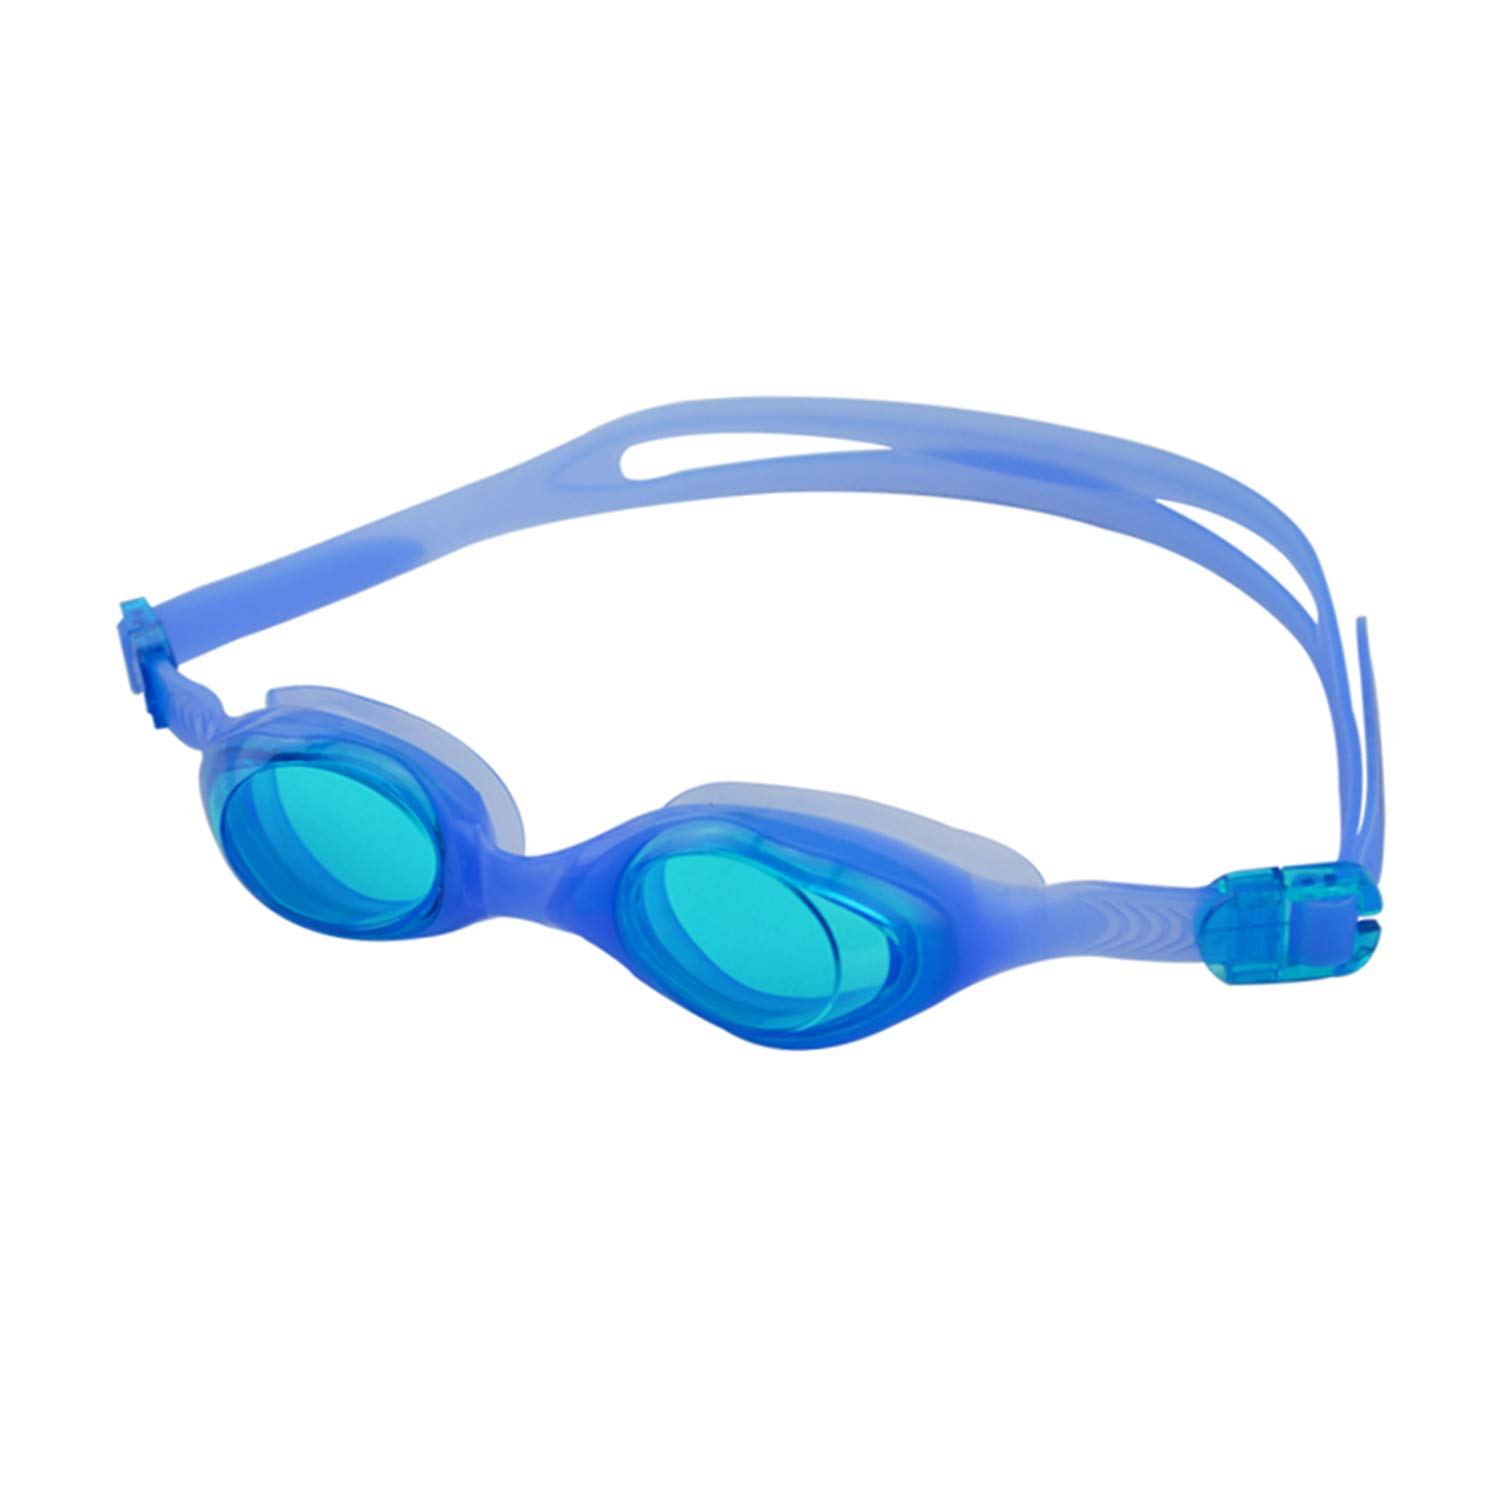 Trailing kids swimming goggles